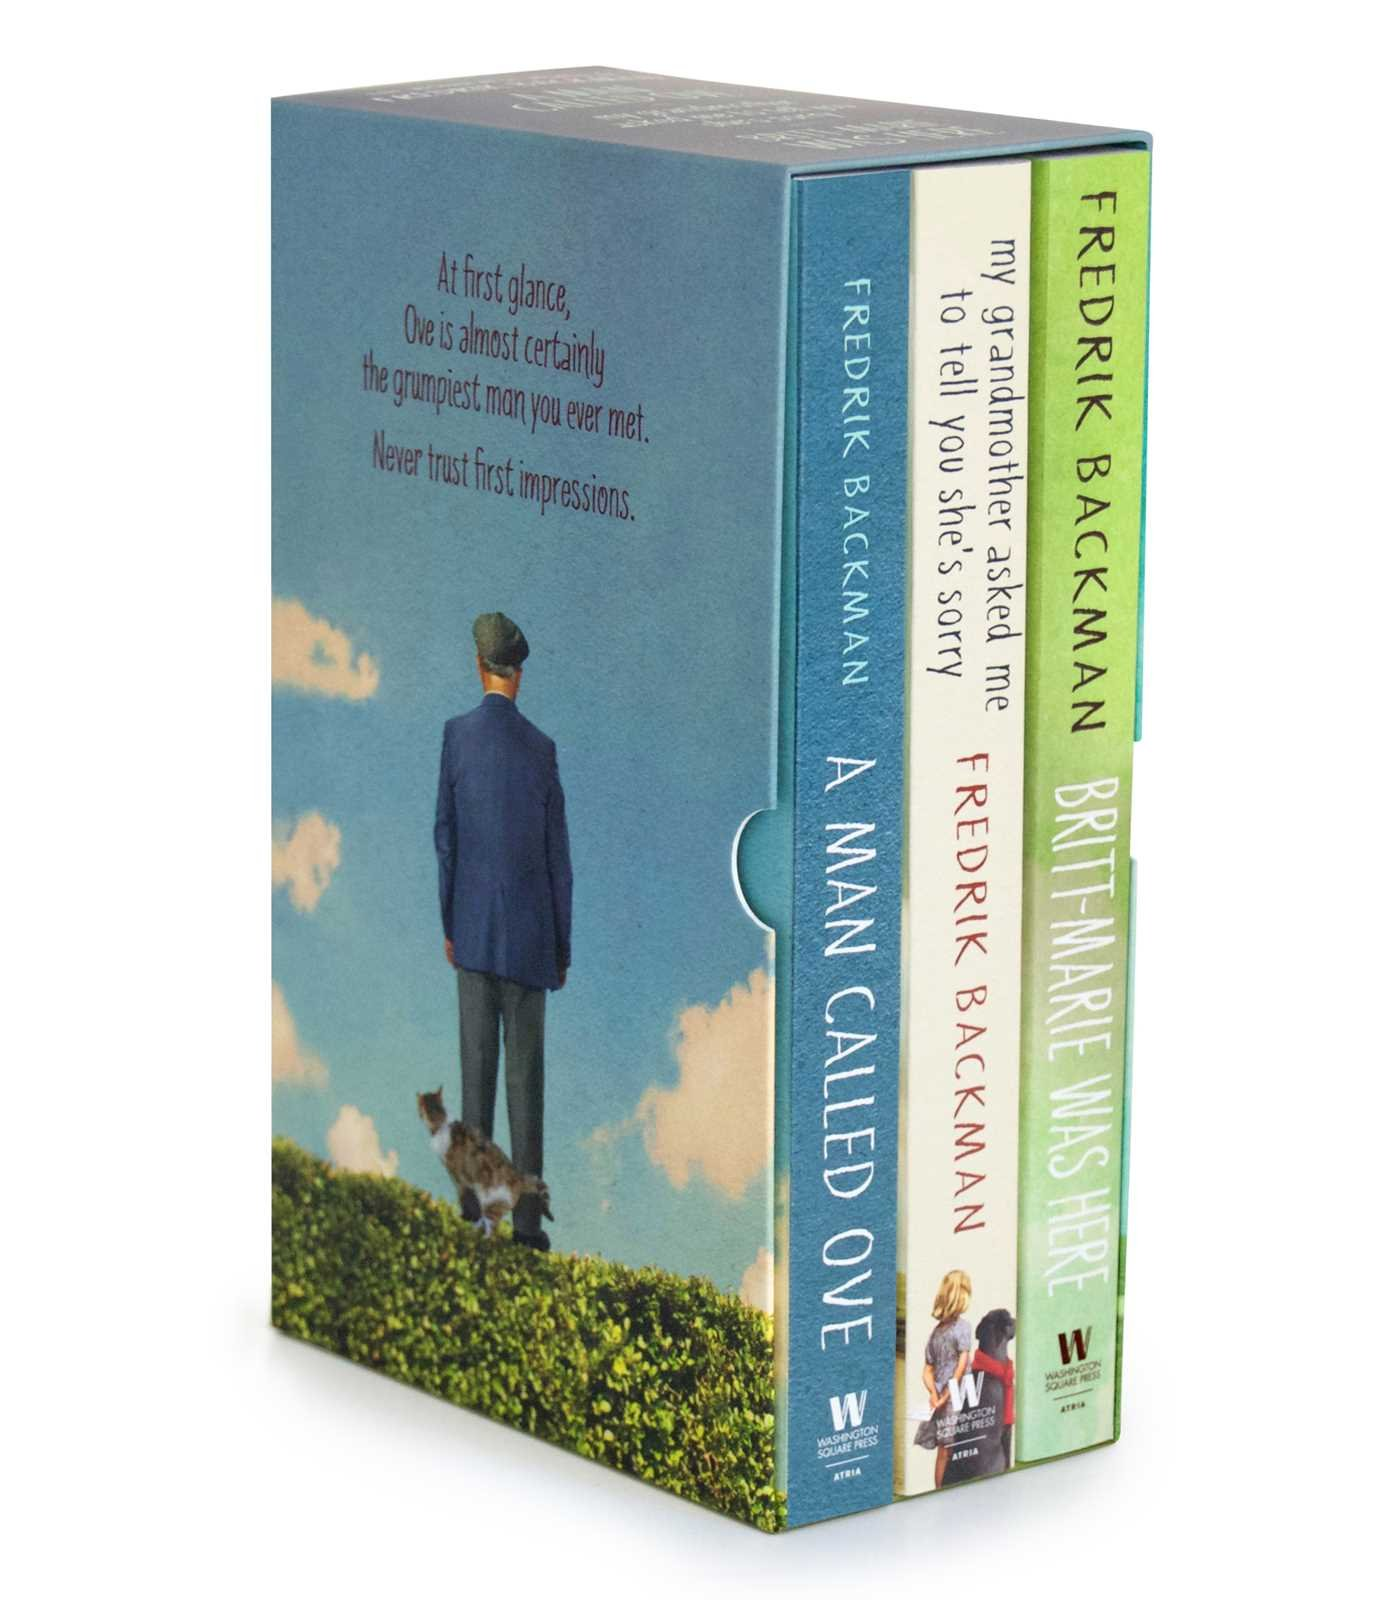 Amazon.com: The Fredrik Backman Collection: A Man Called Ove, My ...